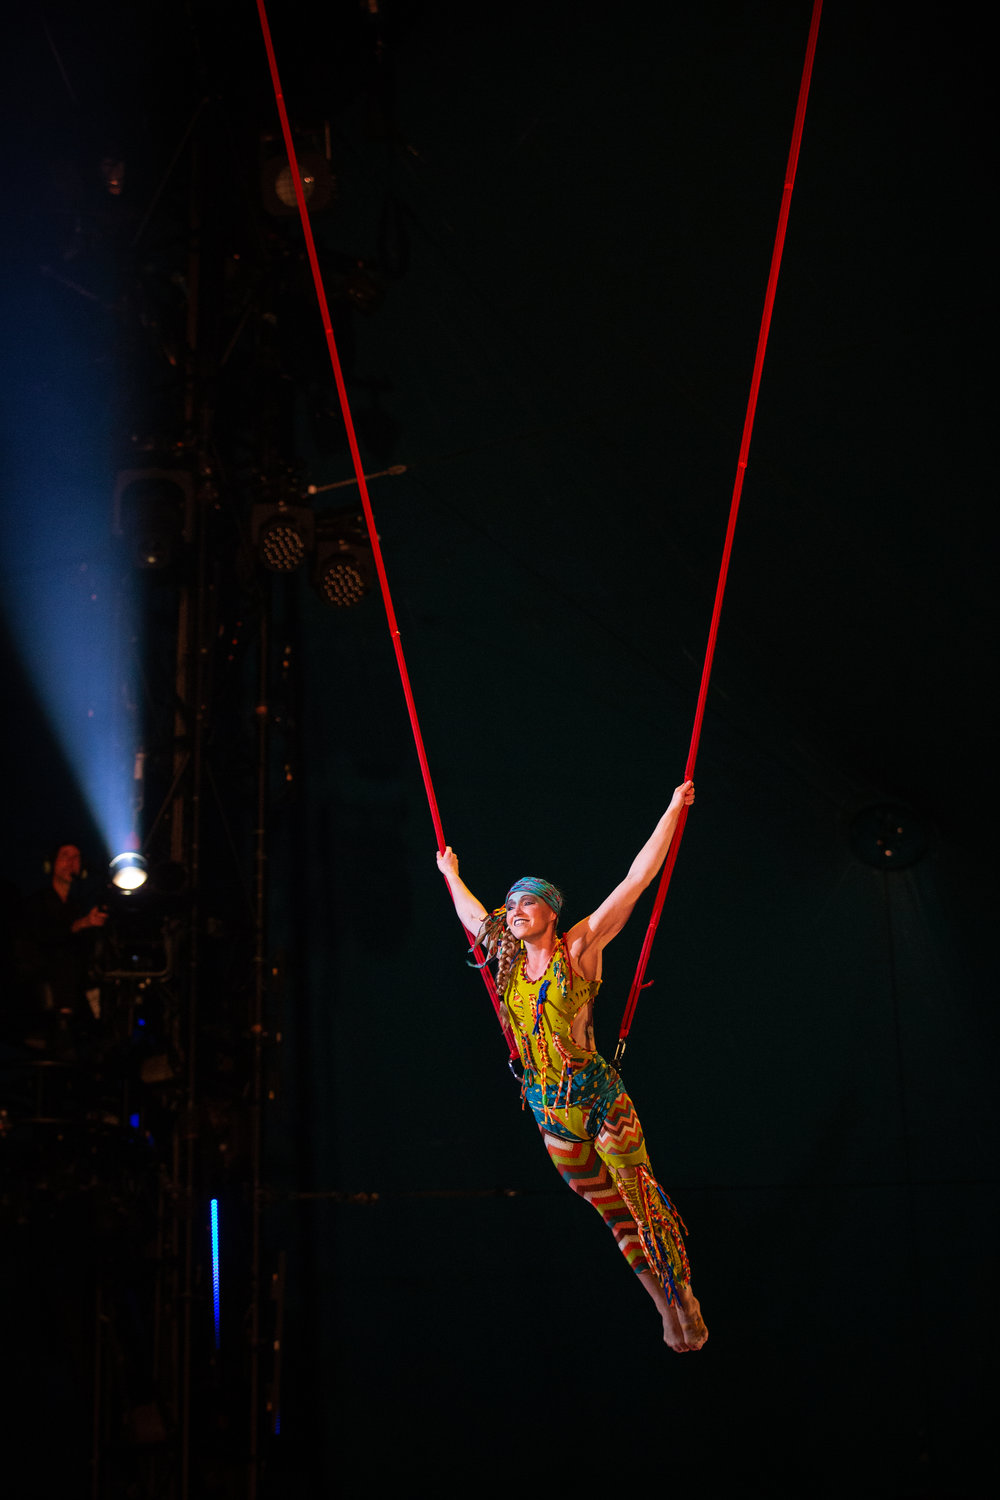 Kia Eastman on bungees with Cirque du Soleil's VOLTA. Photo by Andi Atherton